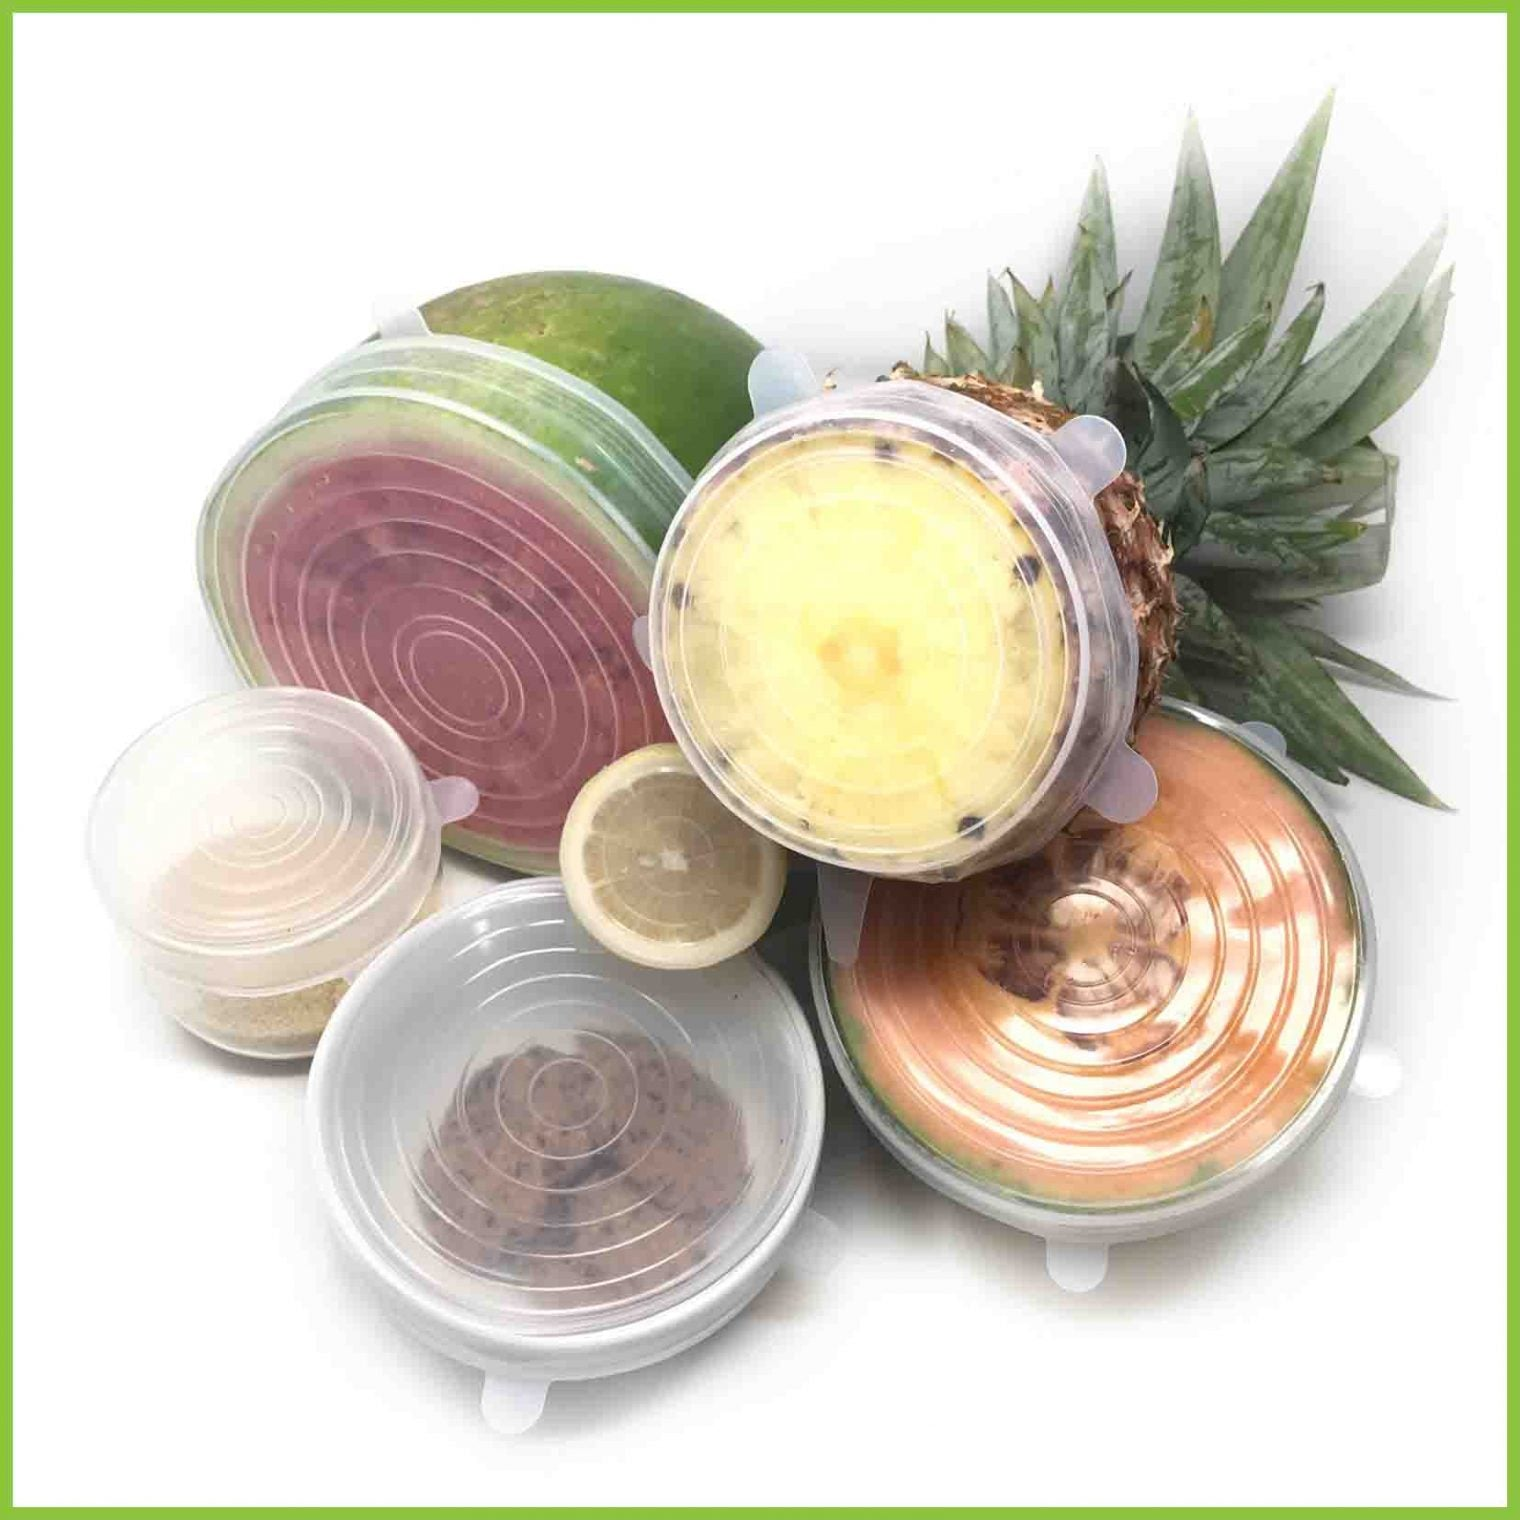 6 reusable silicone lids keeping various foods fresh.